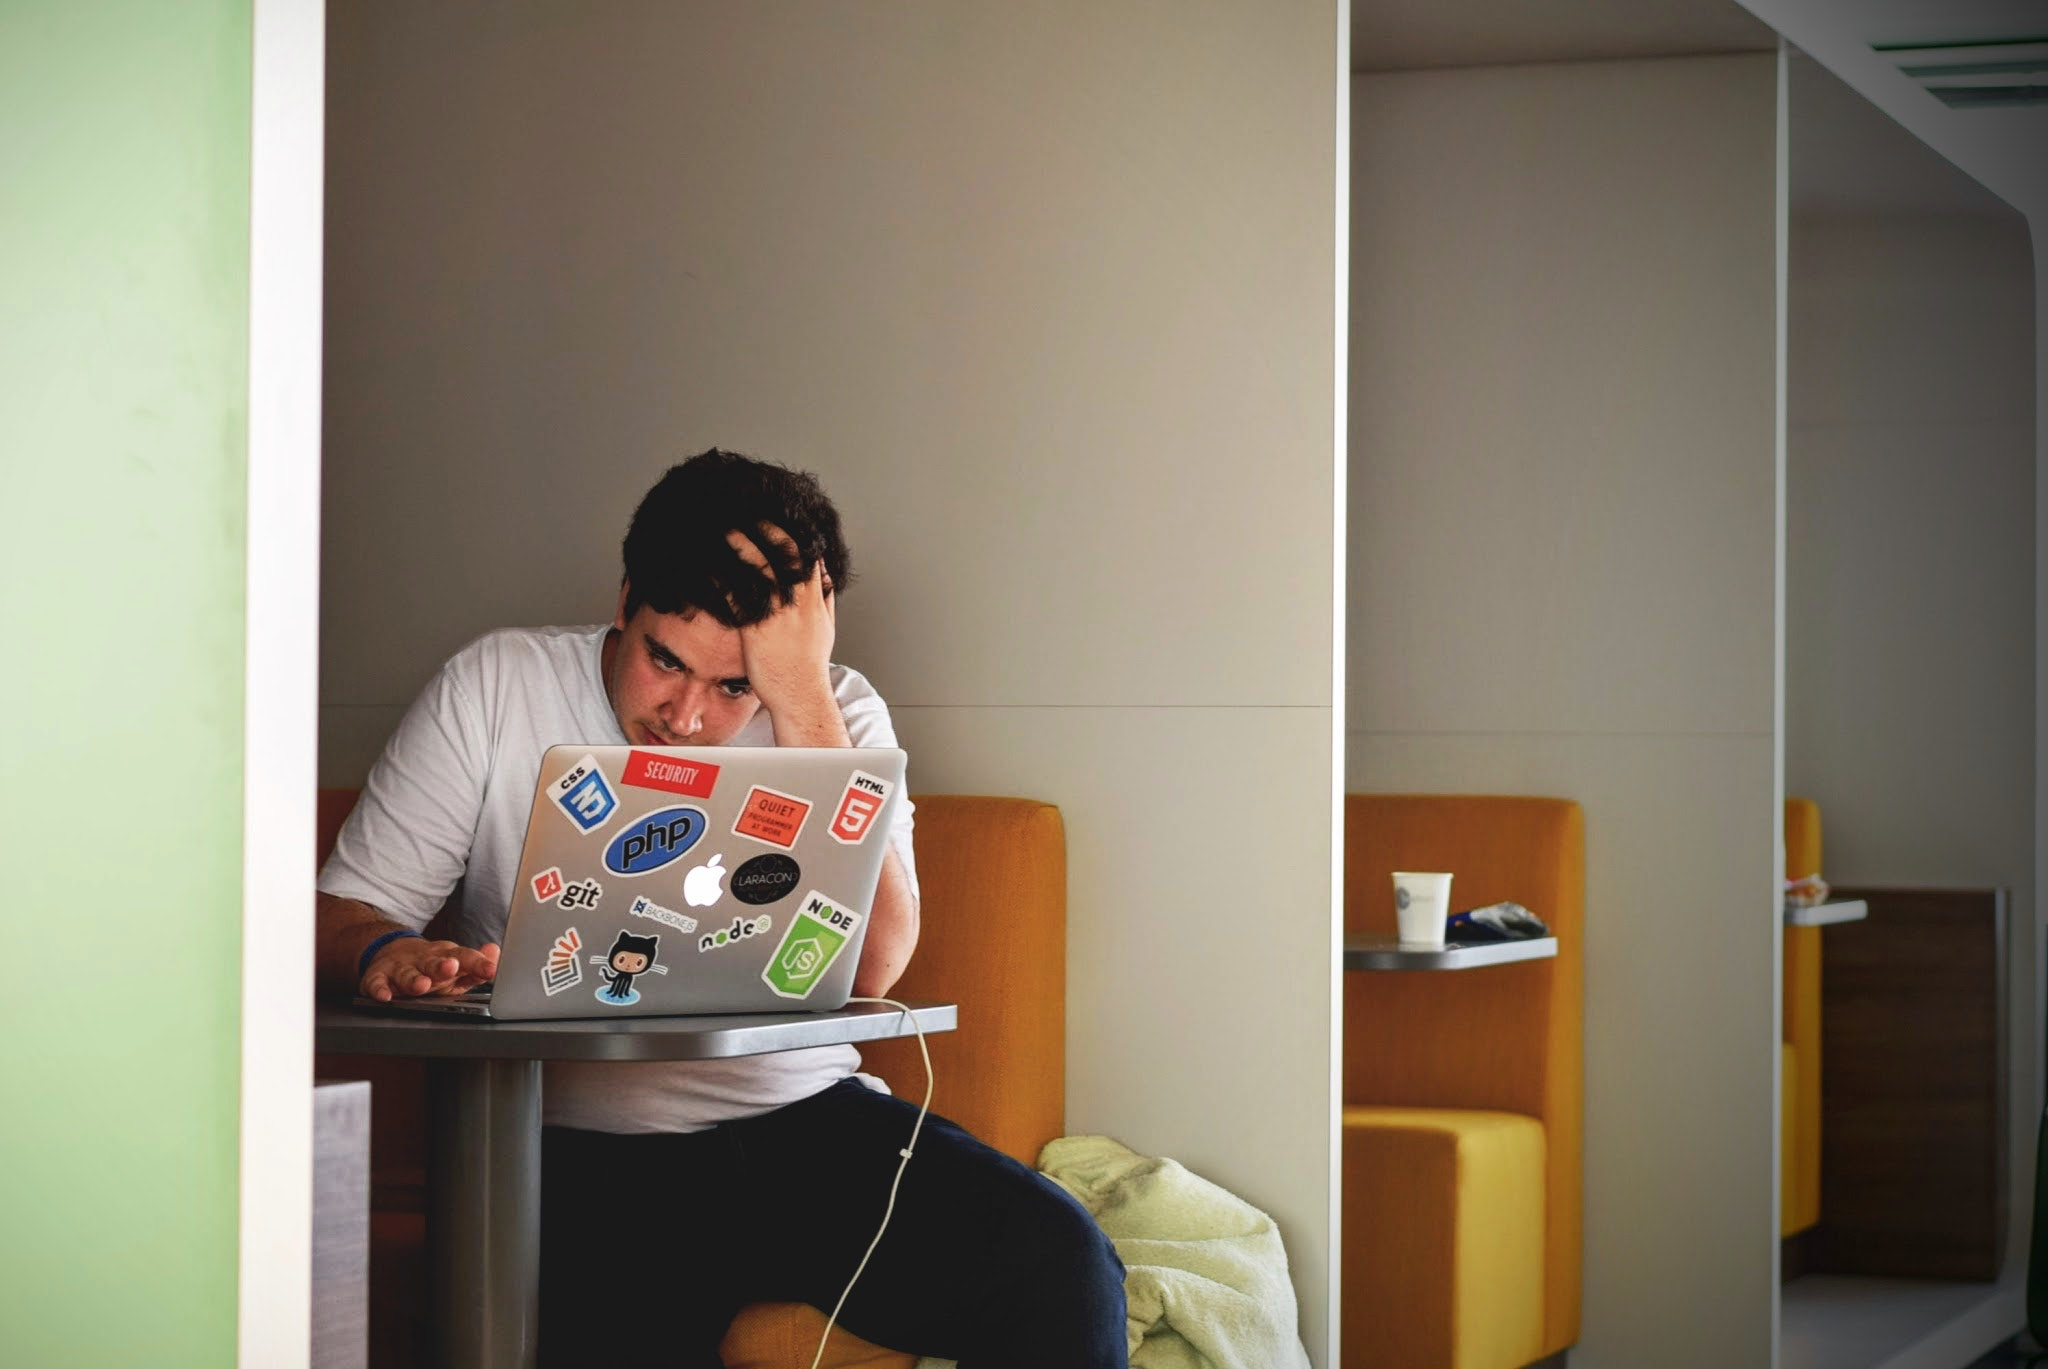 a student works on his laptop, looking stressed